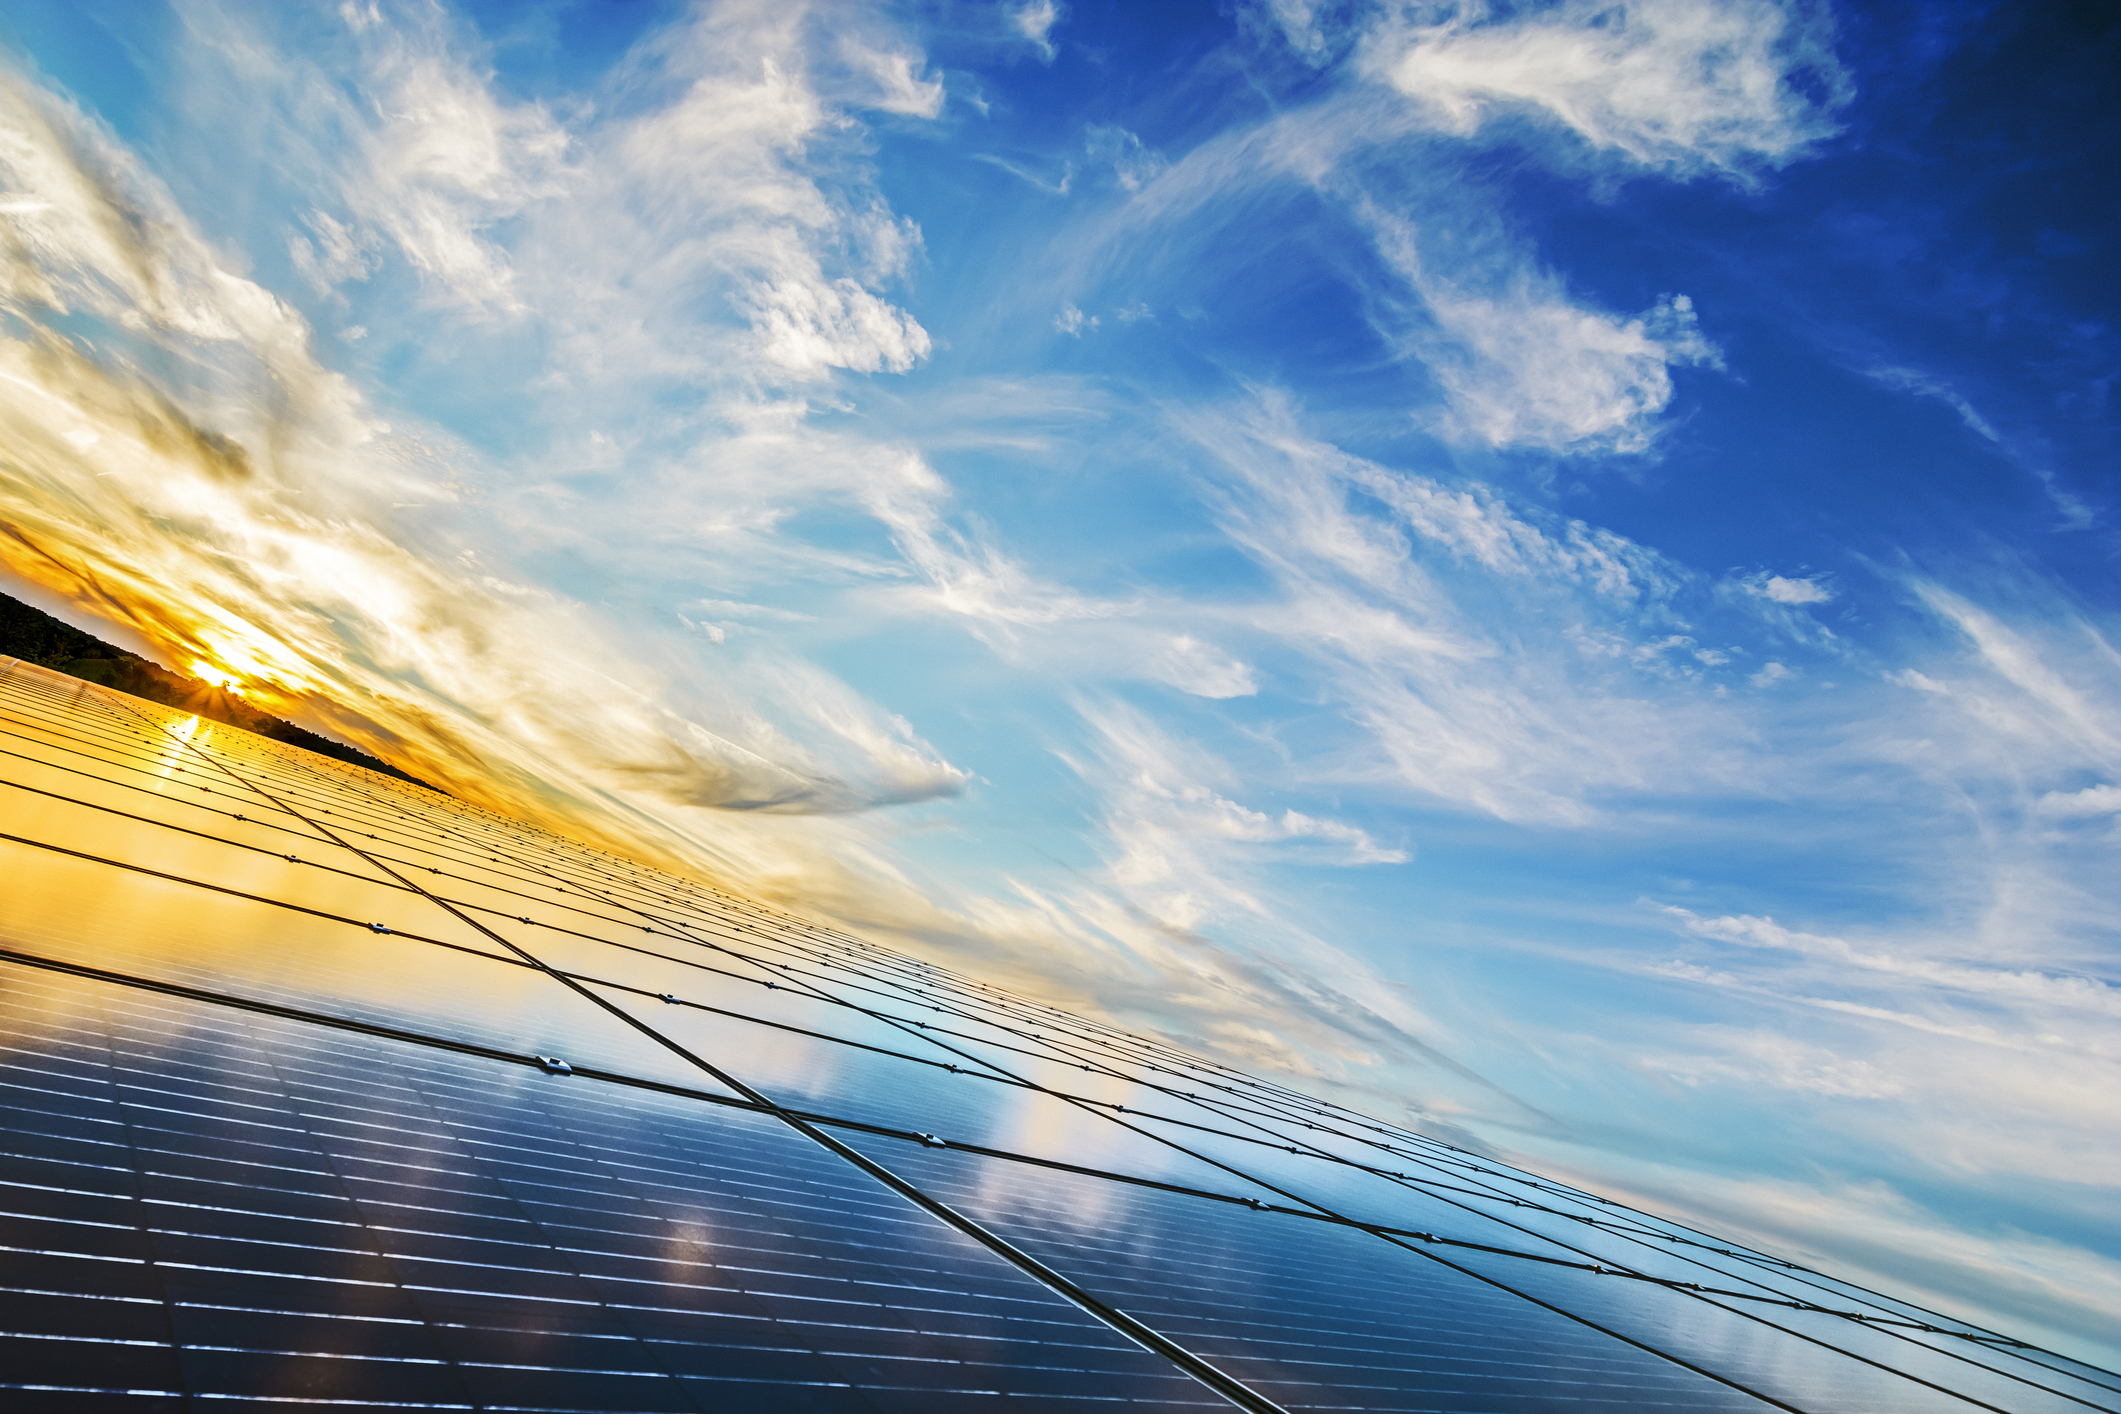 Why Distributed Solar Power is Better than Coal in Modern Power Grids